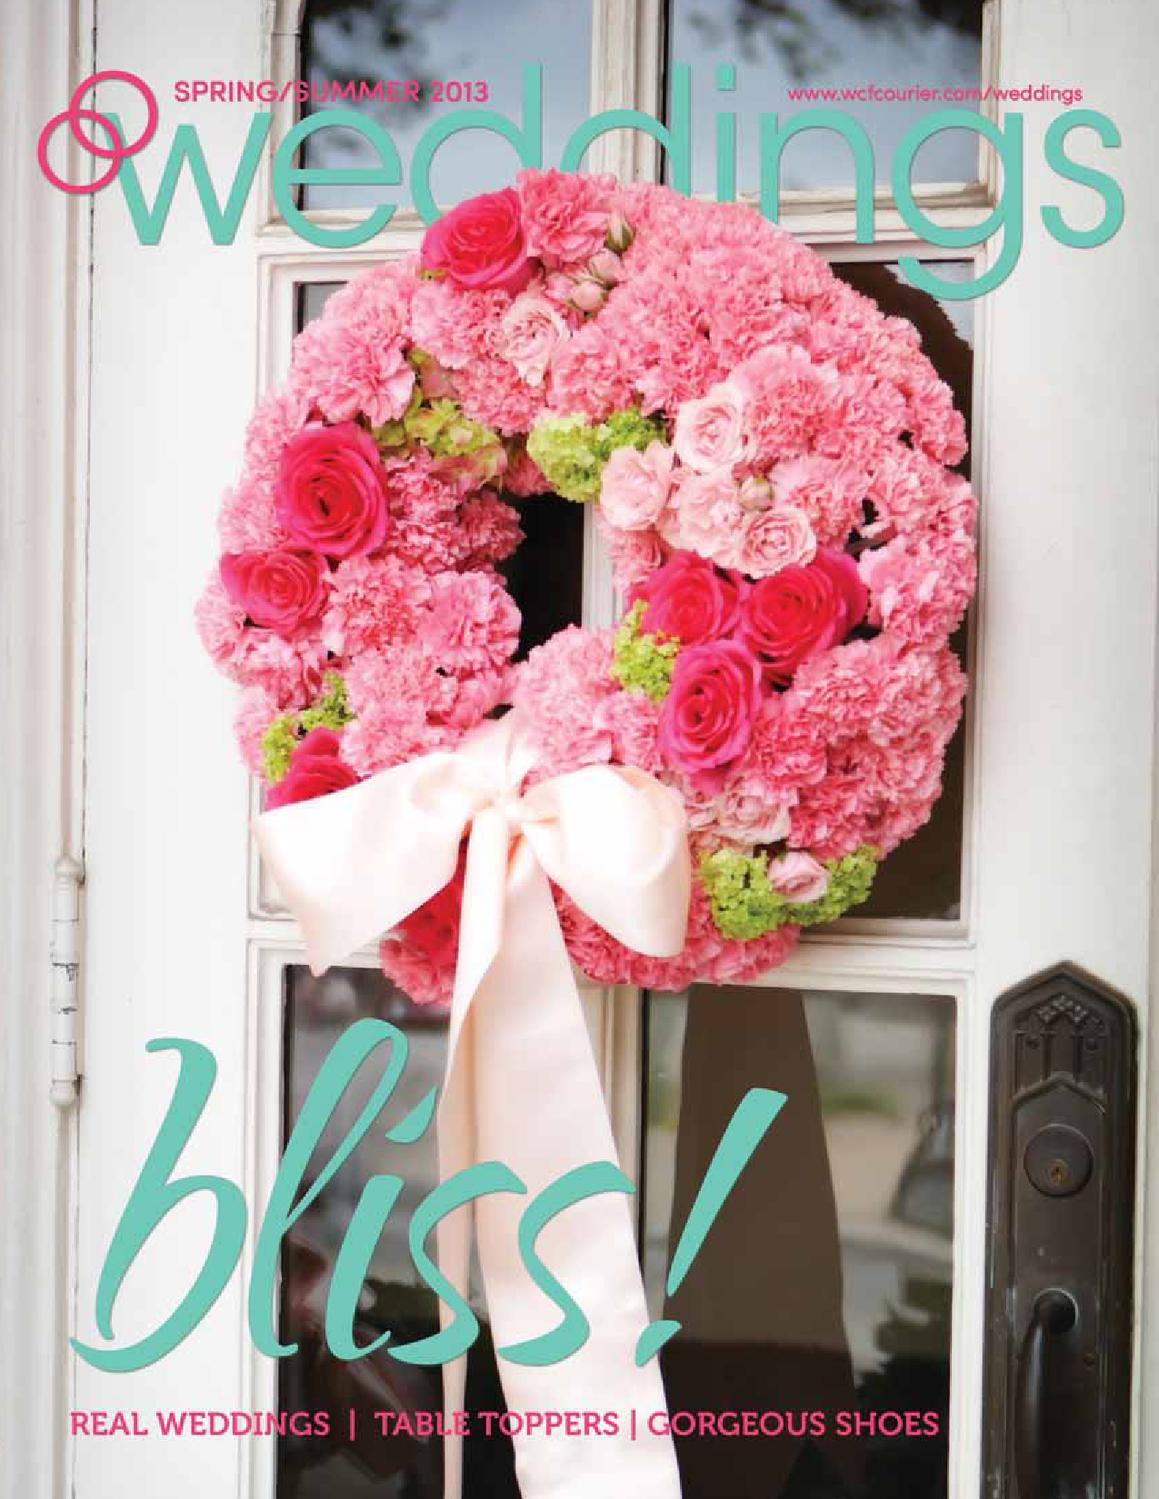 Weddings - Spring/Summer 2013 by Waterloo-Cedar Falls Courier - issuu